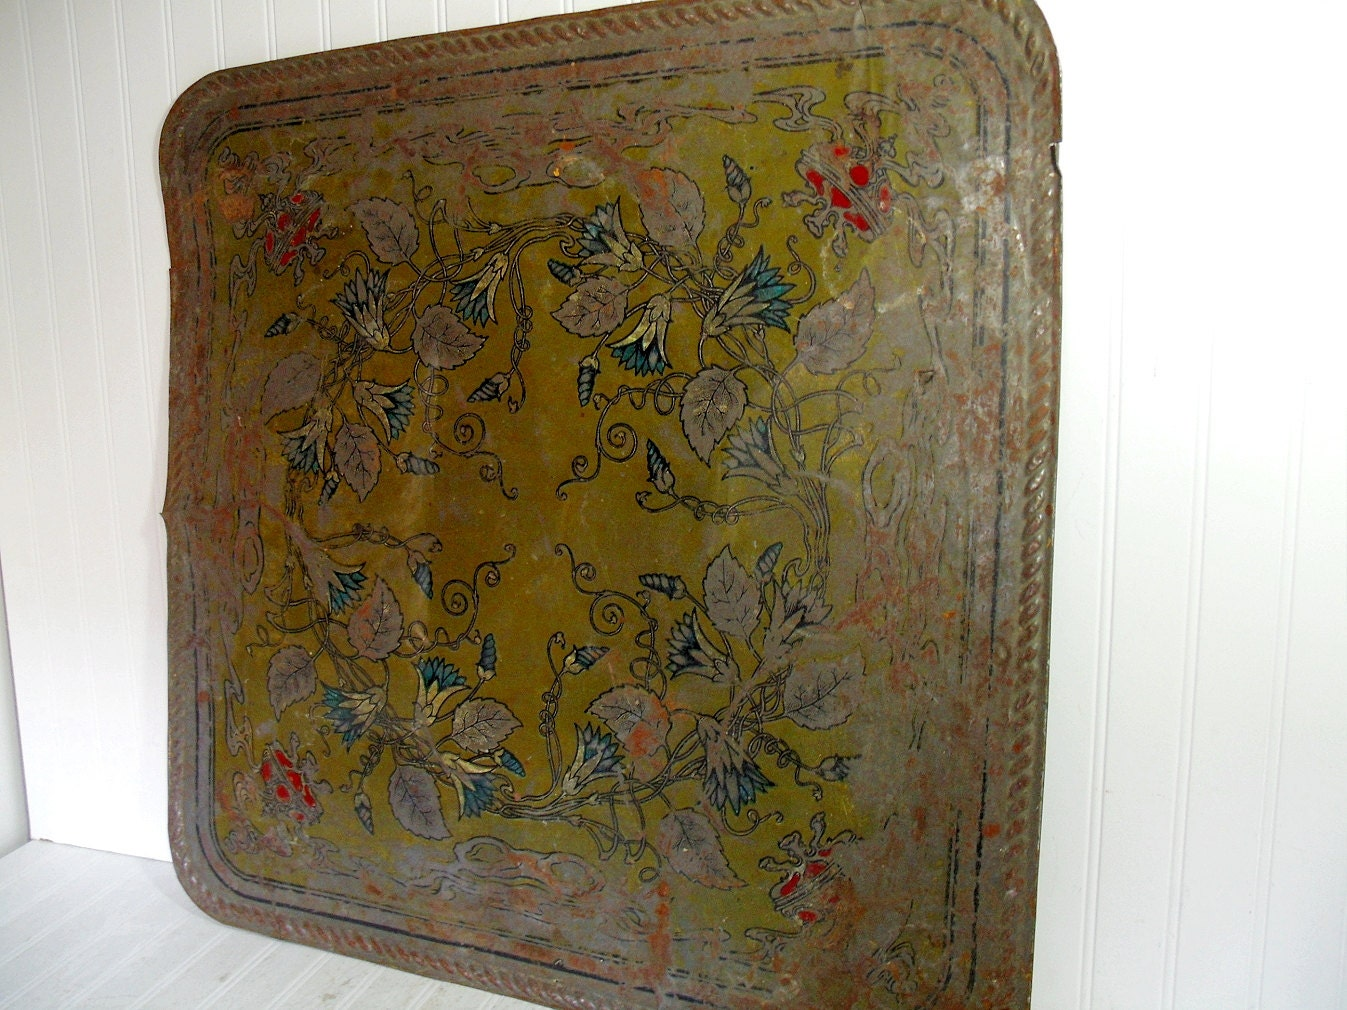 Antique Wall Decor Antique Metal Wall Art Victorian Style Hand Painted Design